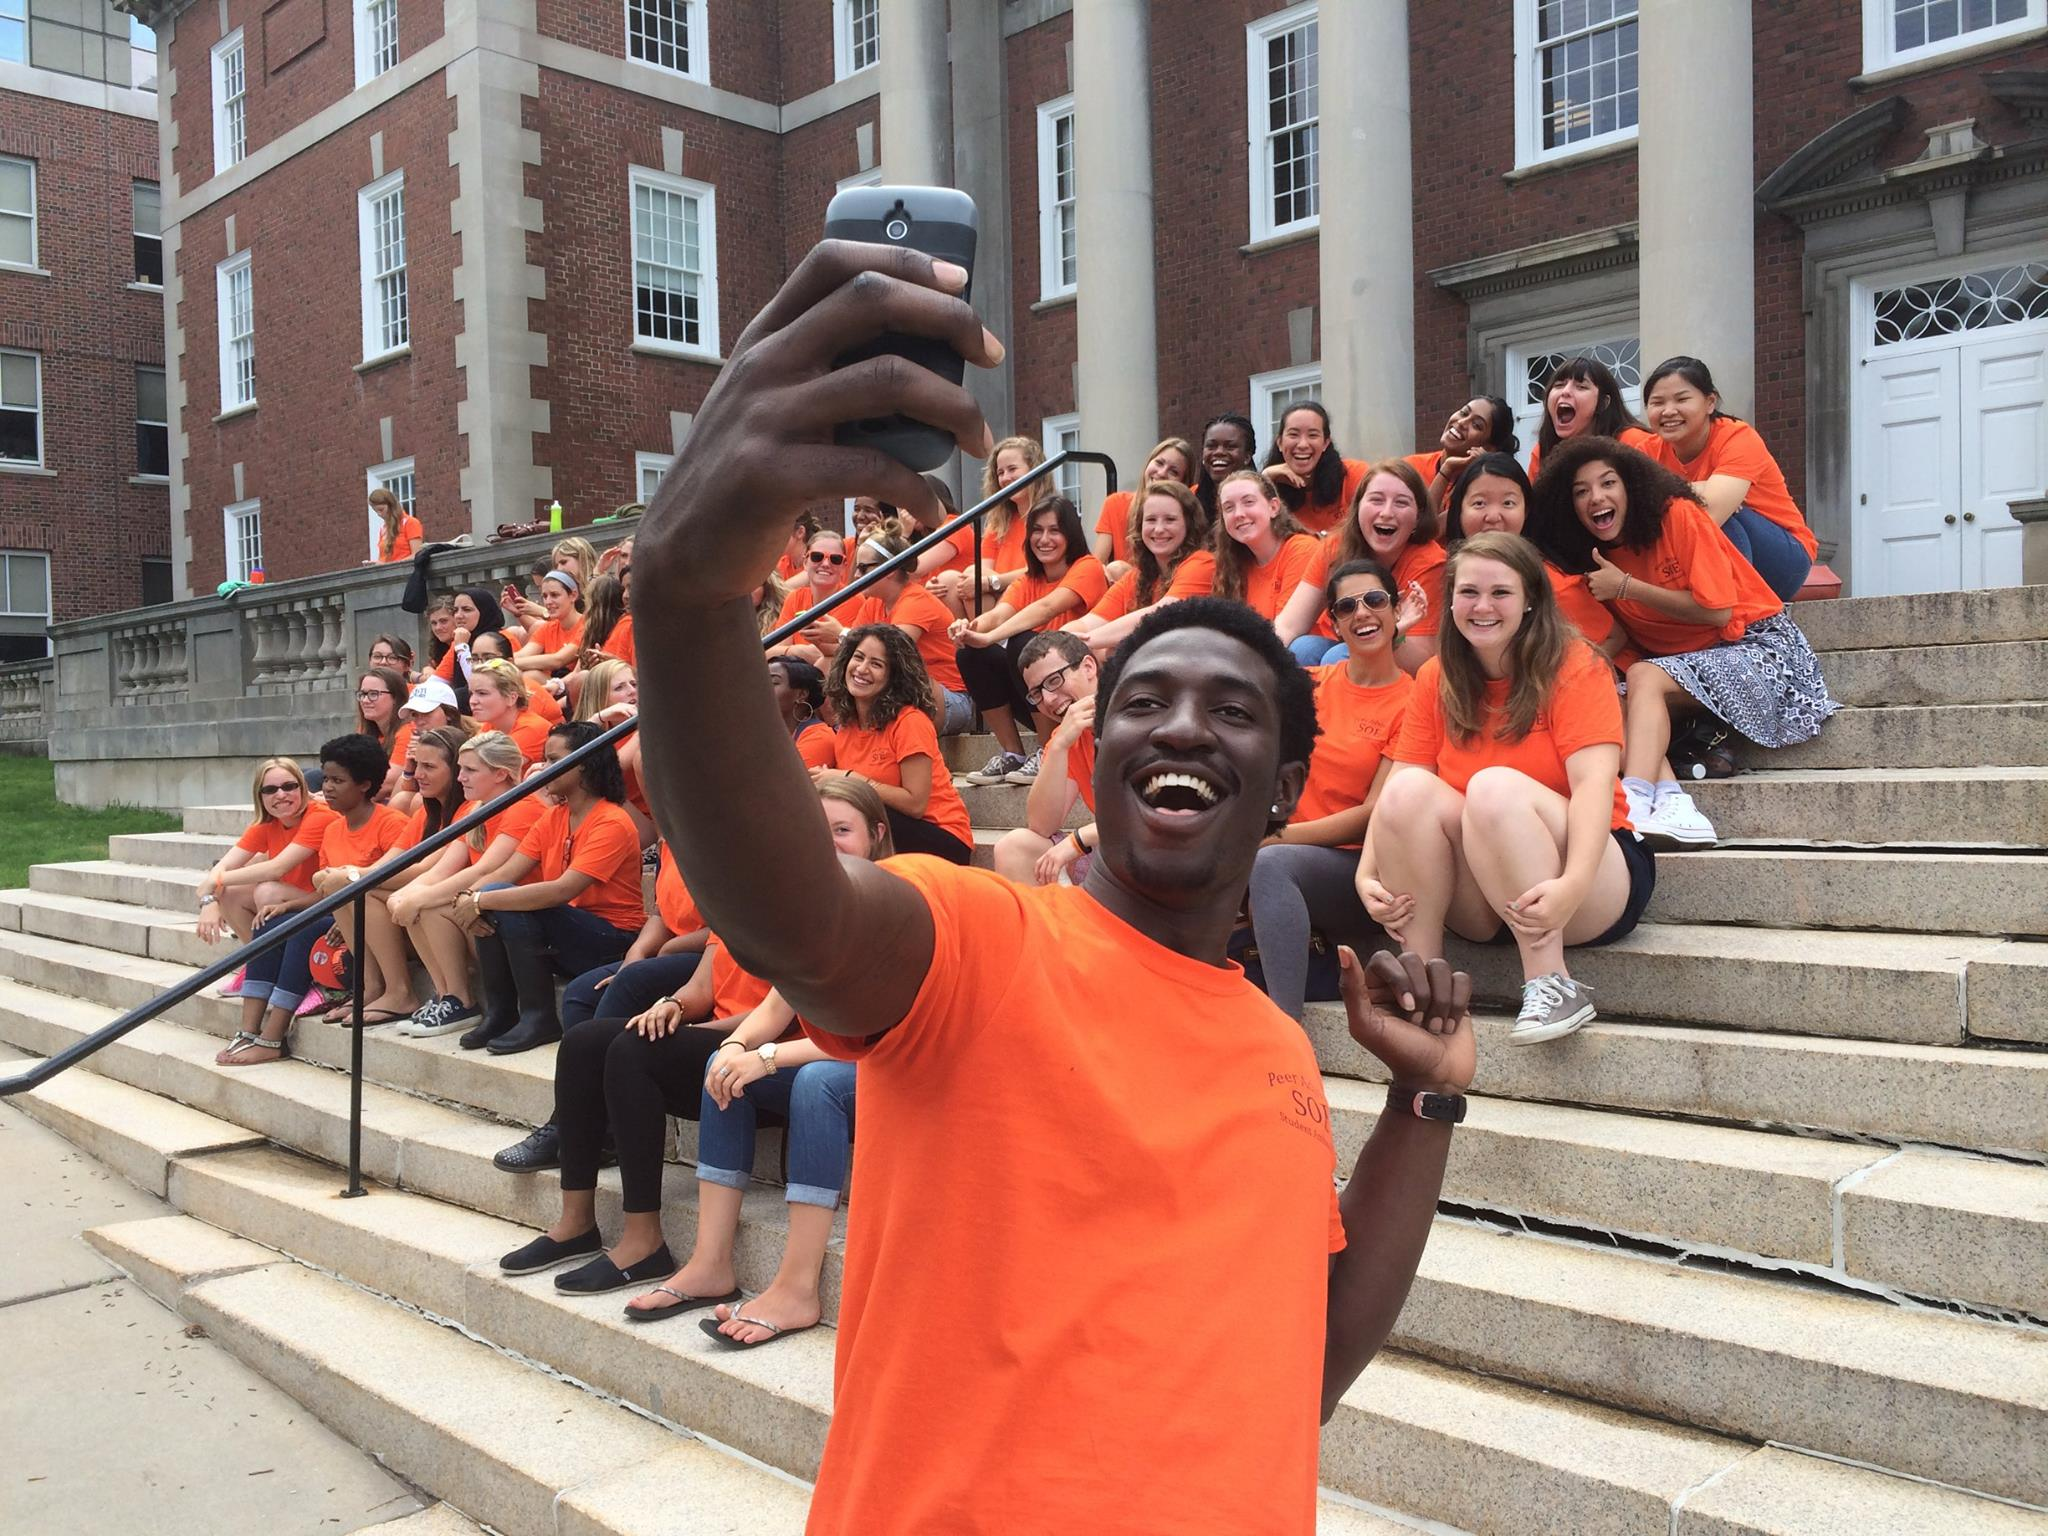 An SOE peer advisor takes a selfie in front of a group of students